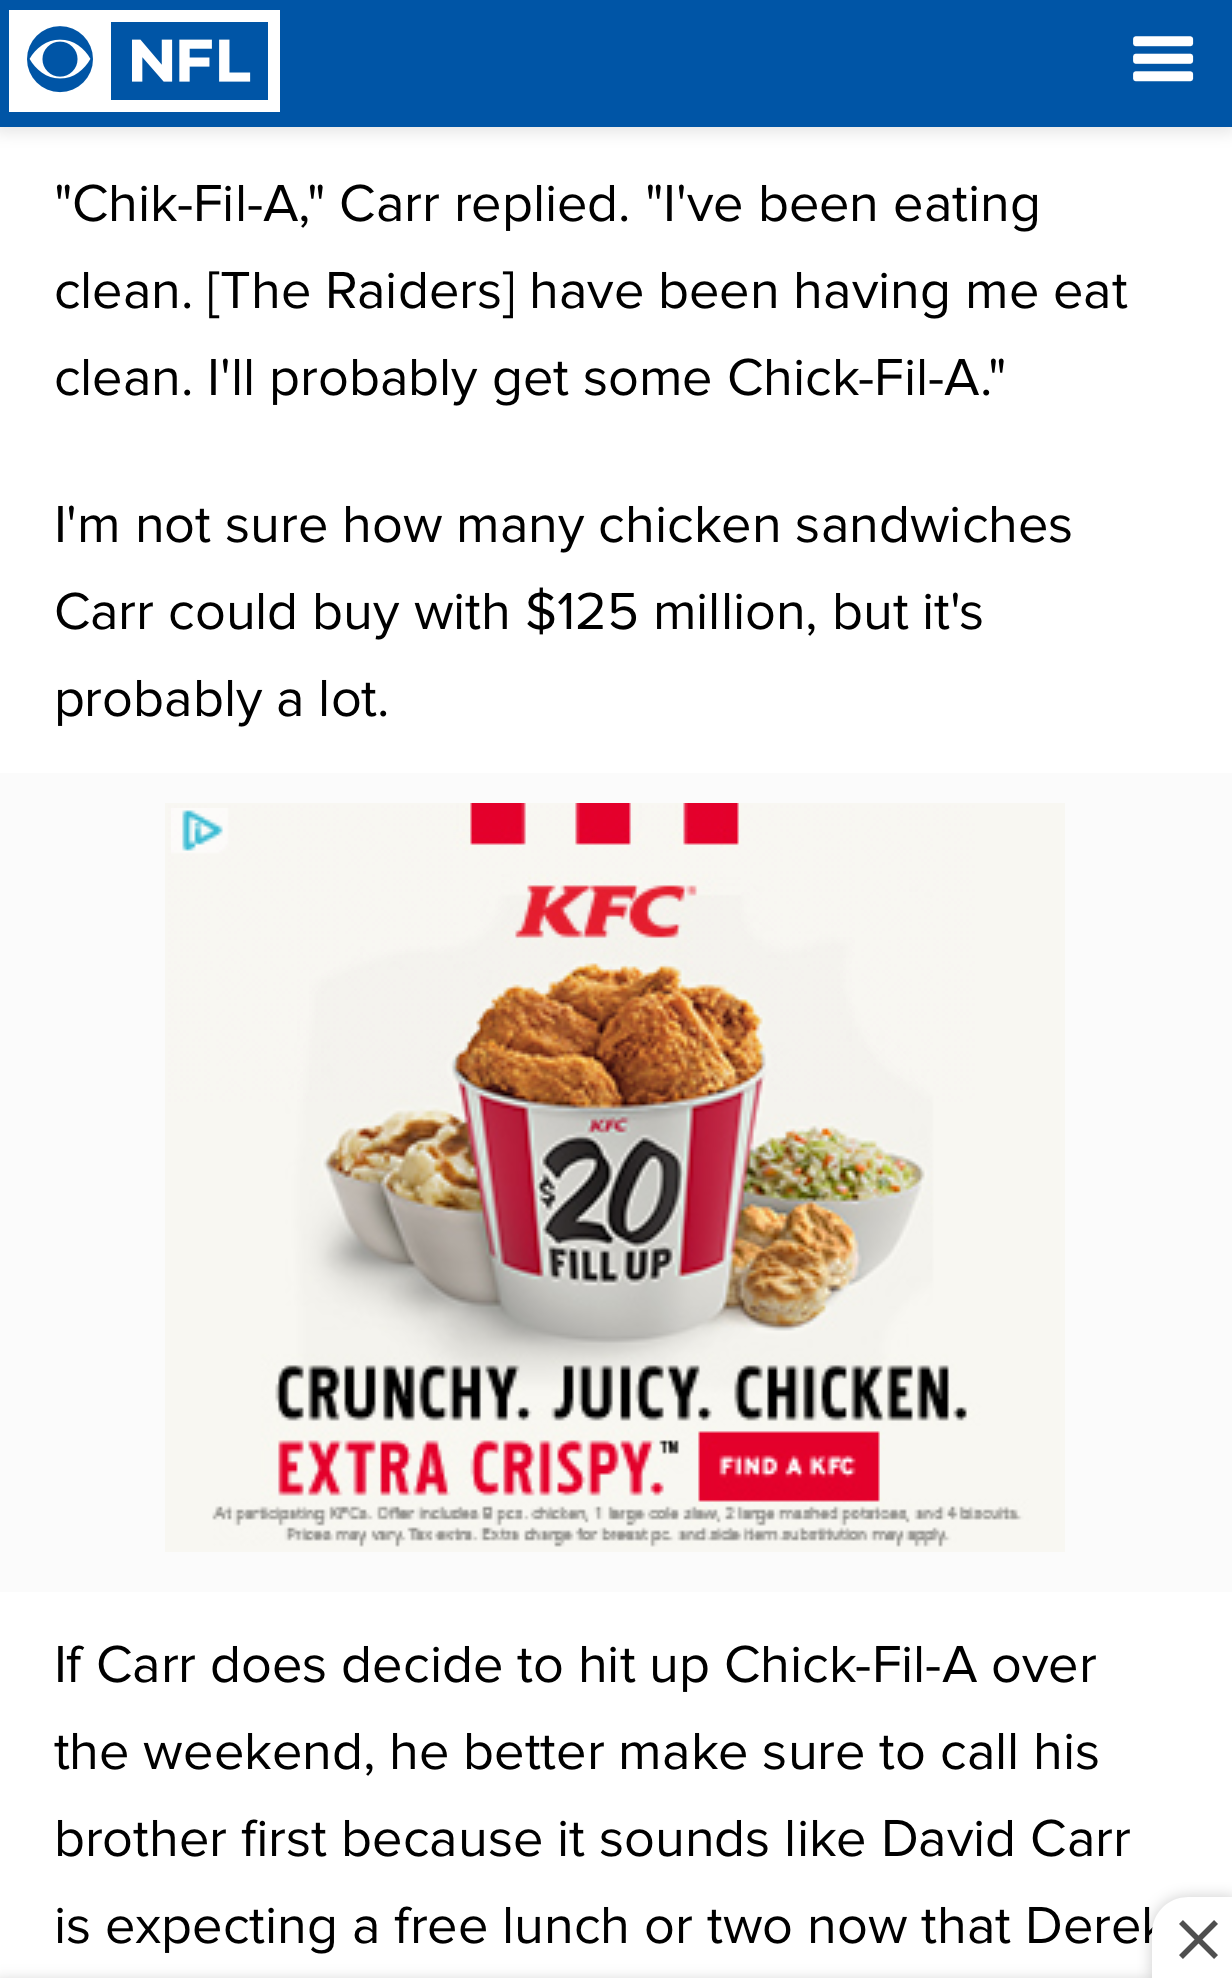 Derek Carr says he wants Chick-Fil-A, targeted ad says he needs KFC